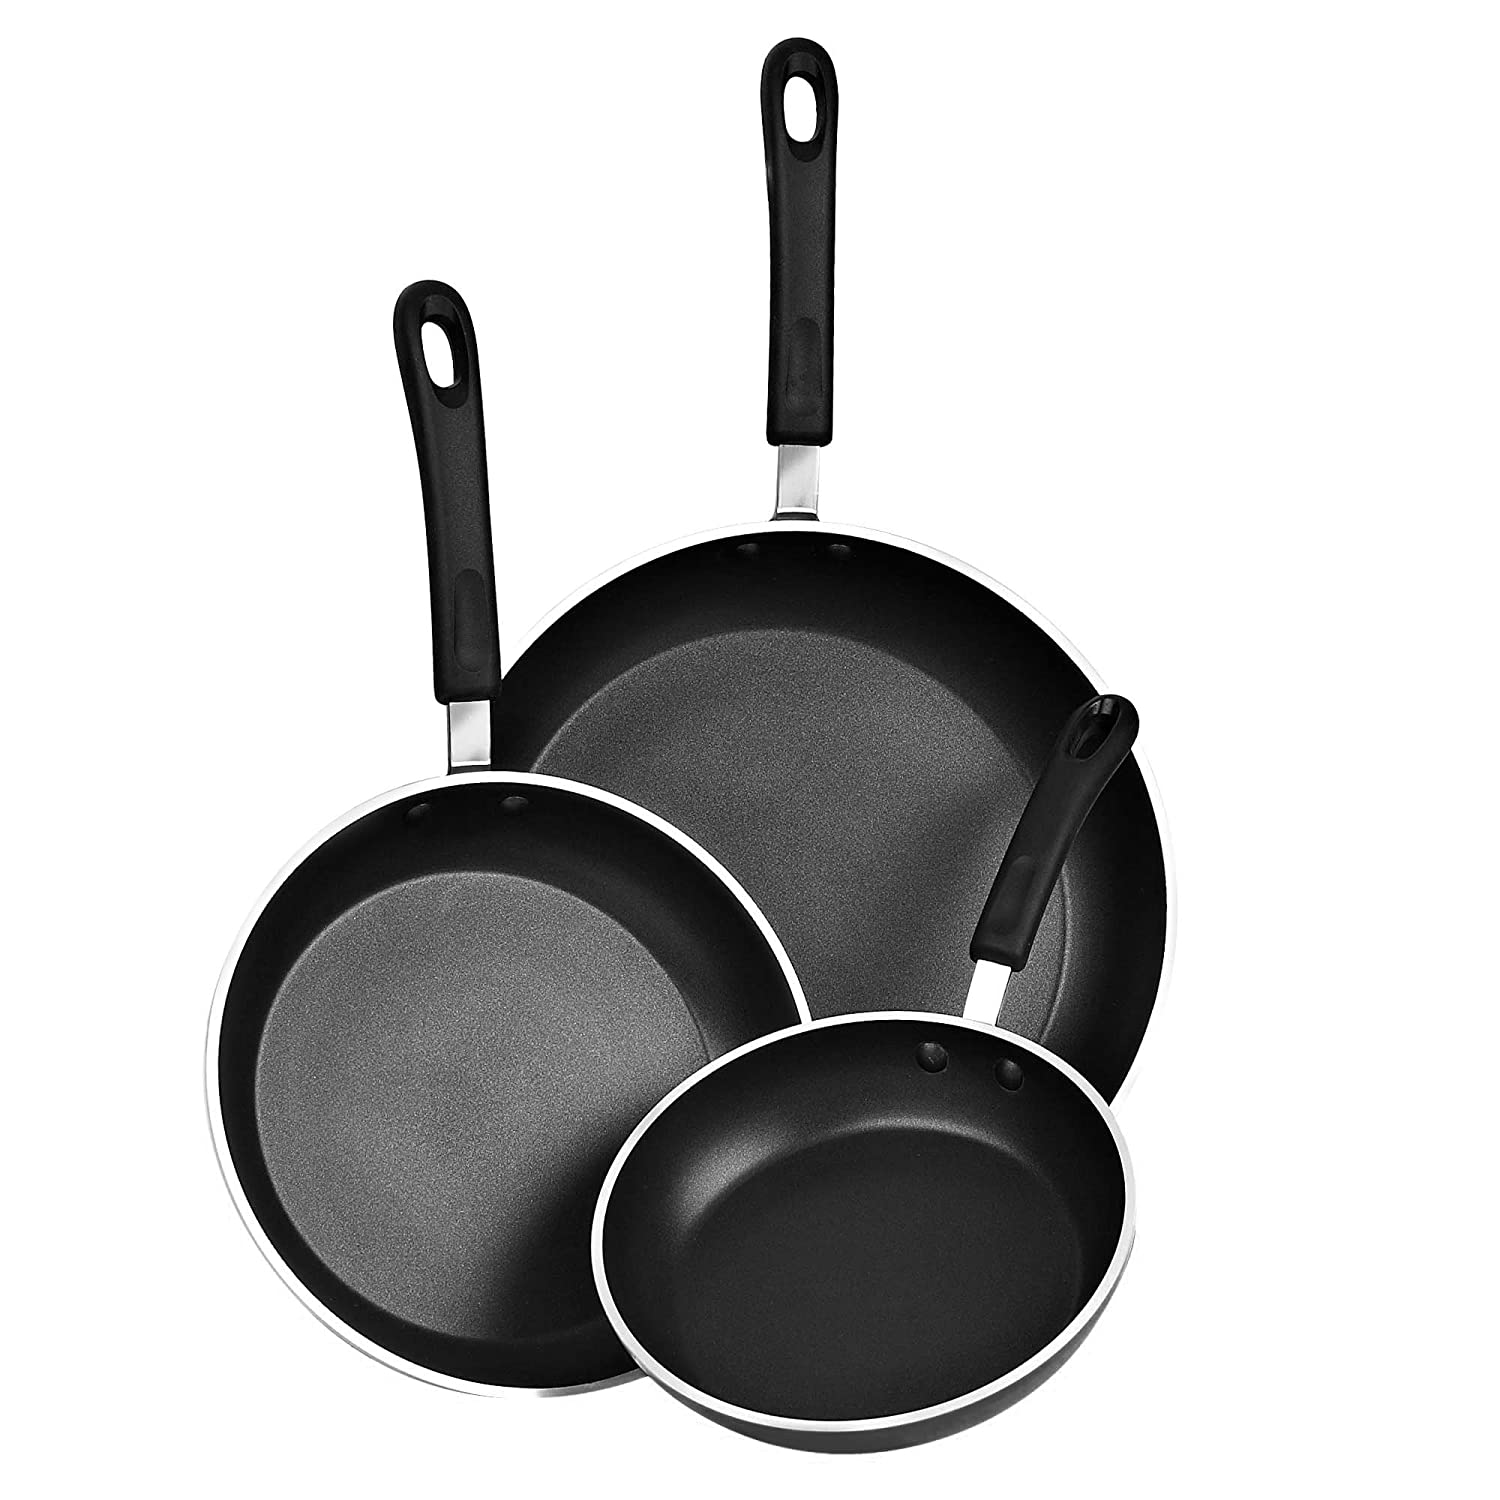 Cook N Home 02476 Nonstick, 10,12 inch 3 Piece Frying Saute Pan Set with Non-Stick Coating Induction Compatible Bottom, 8 10 12 , Black